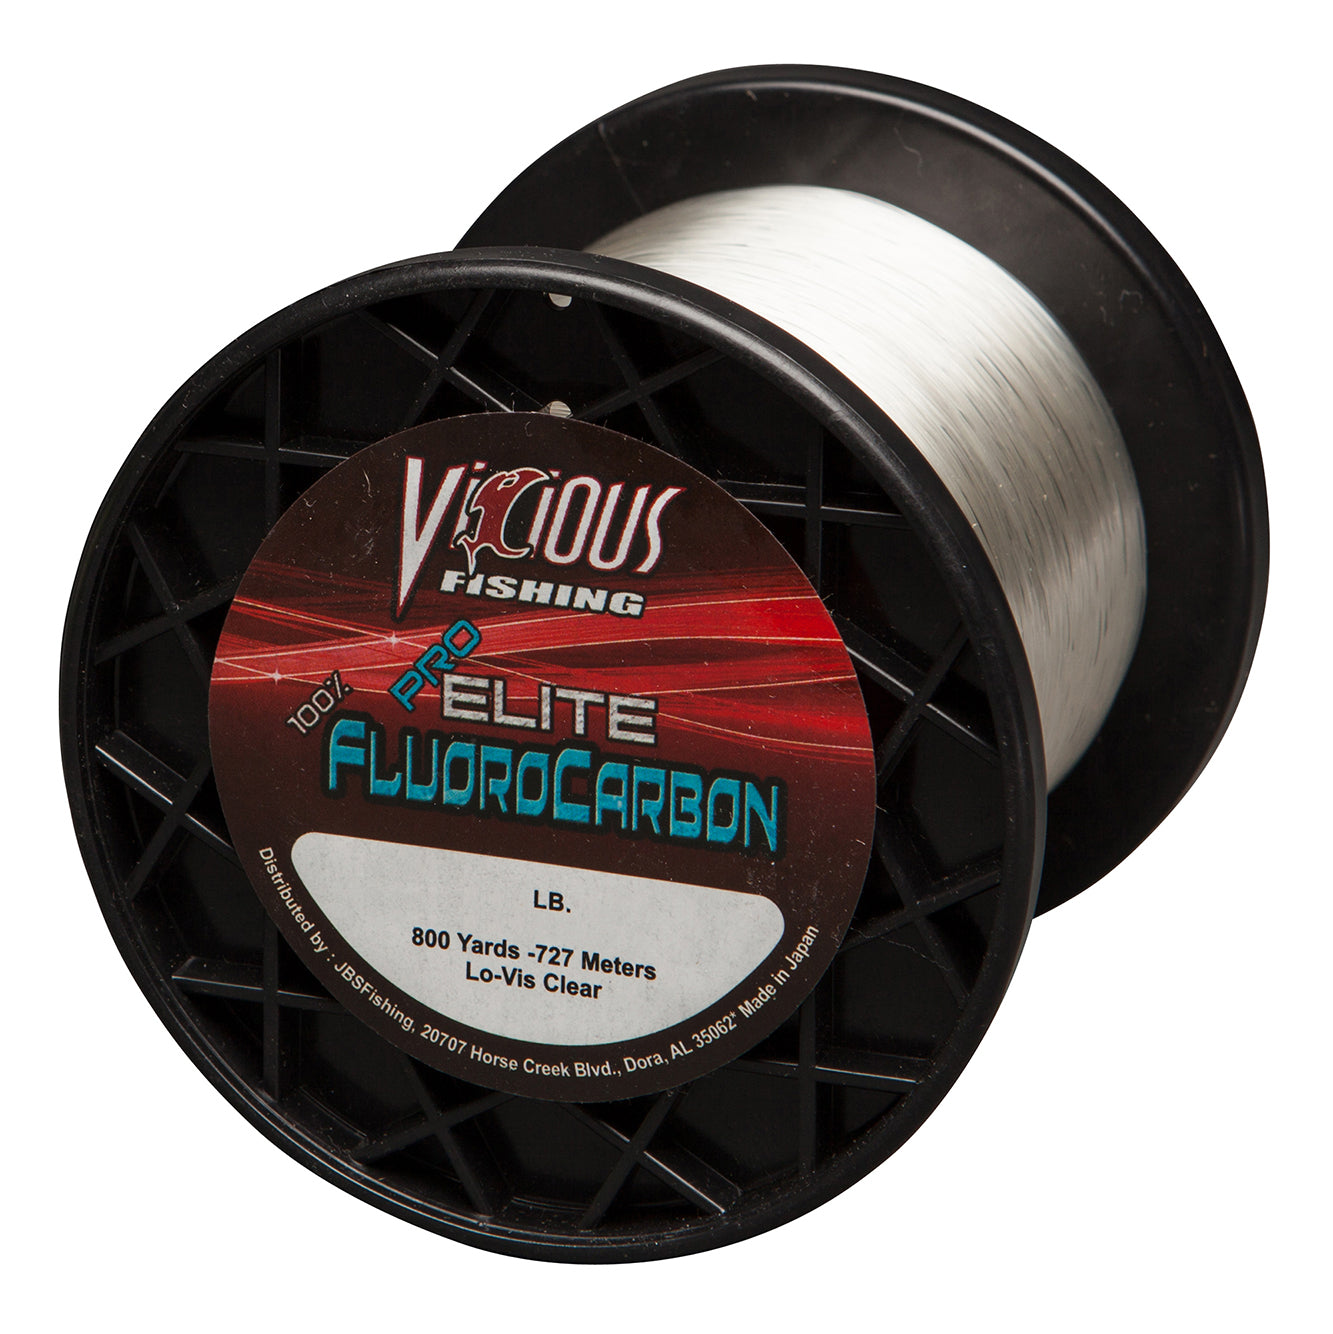 8lb Vicious Pro Elite 100% Fluorocarbon - 800 Yards